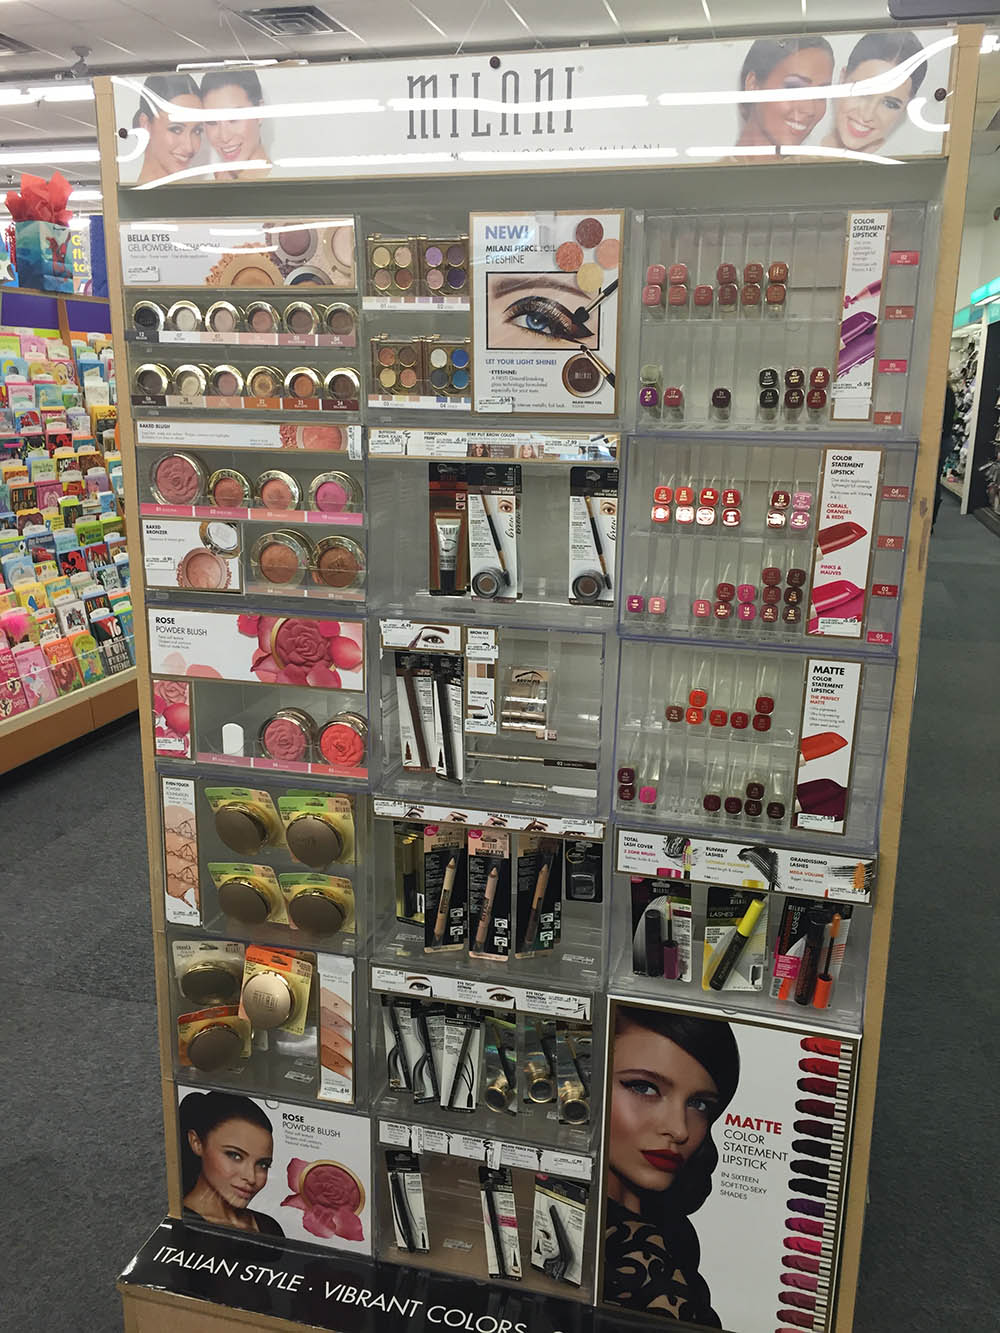 Milani Cosmetics at CVS